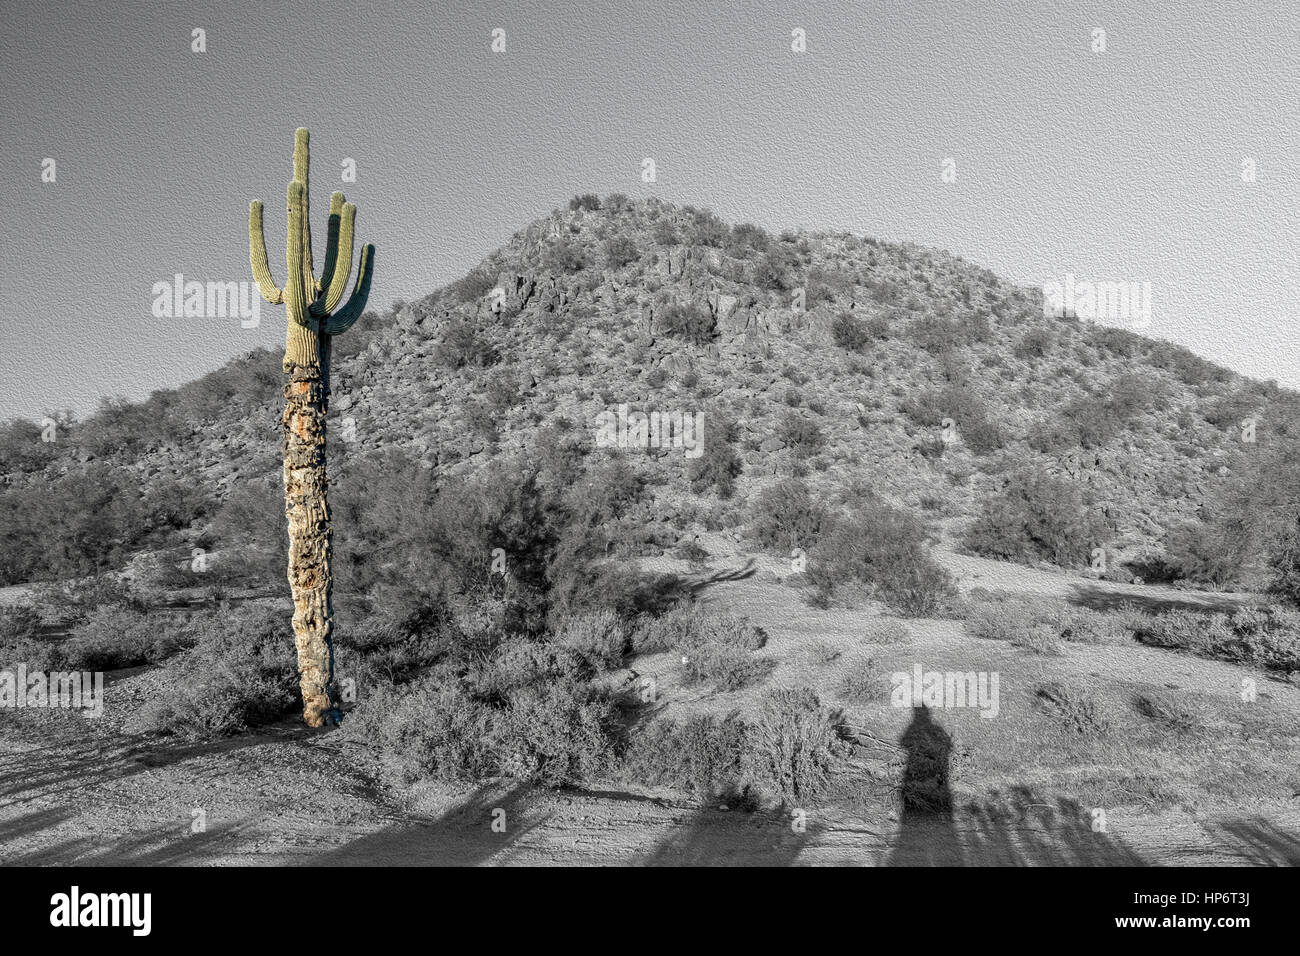 Colored Cactus In Monotone Mountain Scene With Shadows Oil Painting - Stock Image